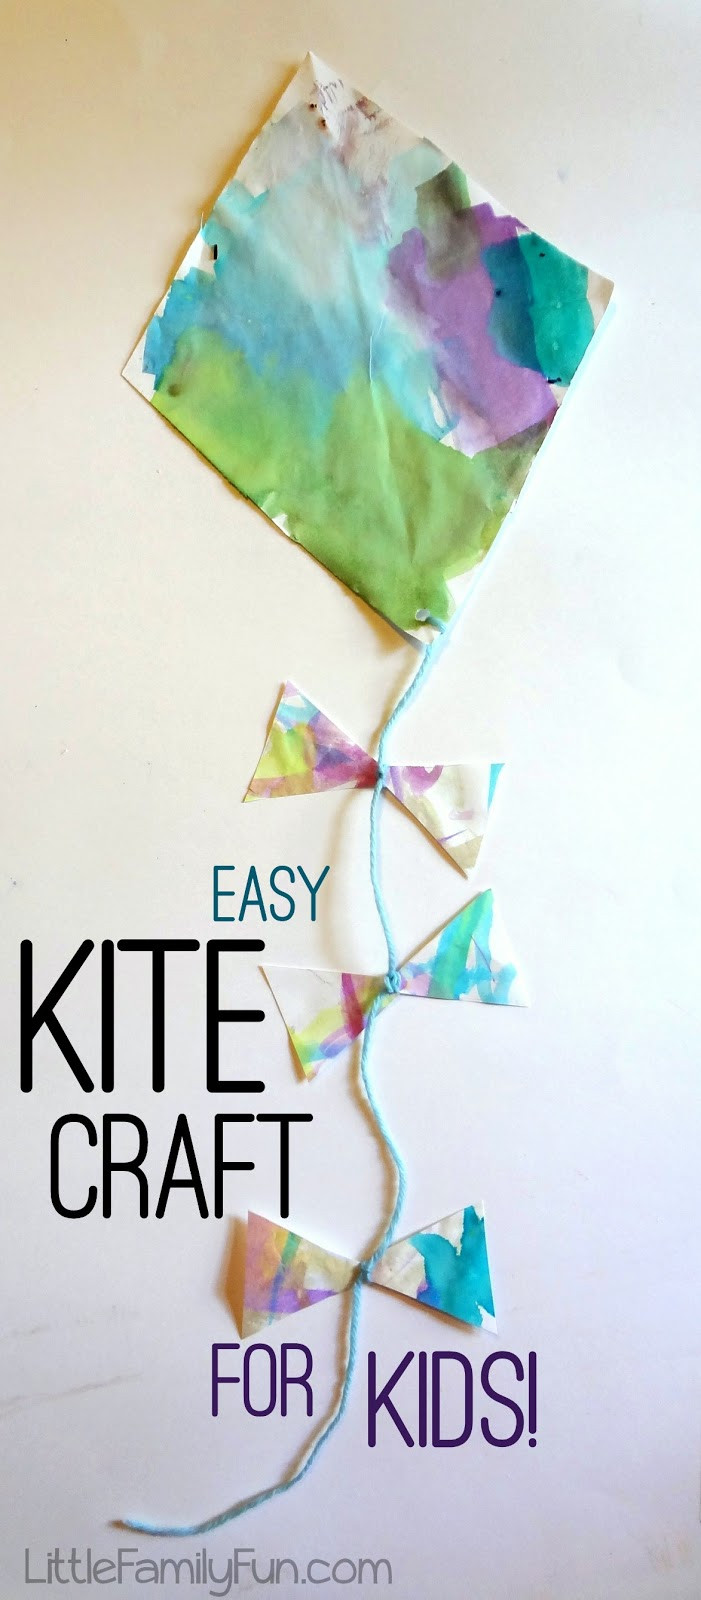 Best ideas about Easy For Kids . Save or Pin Easy Kite Craft for Kids Now.